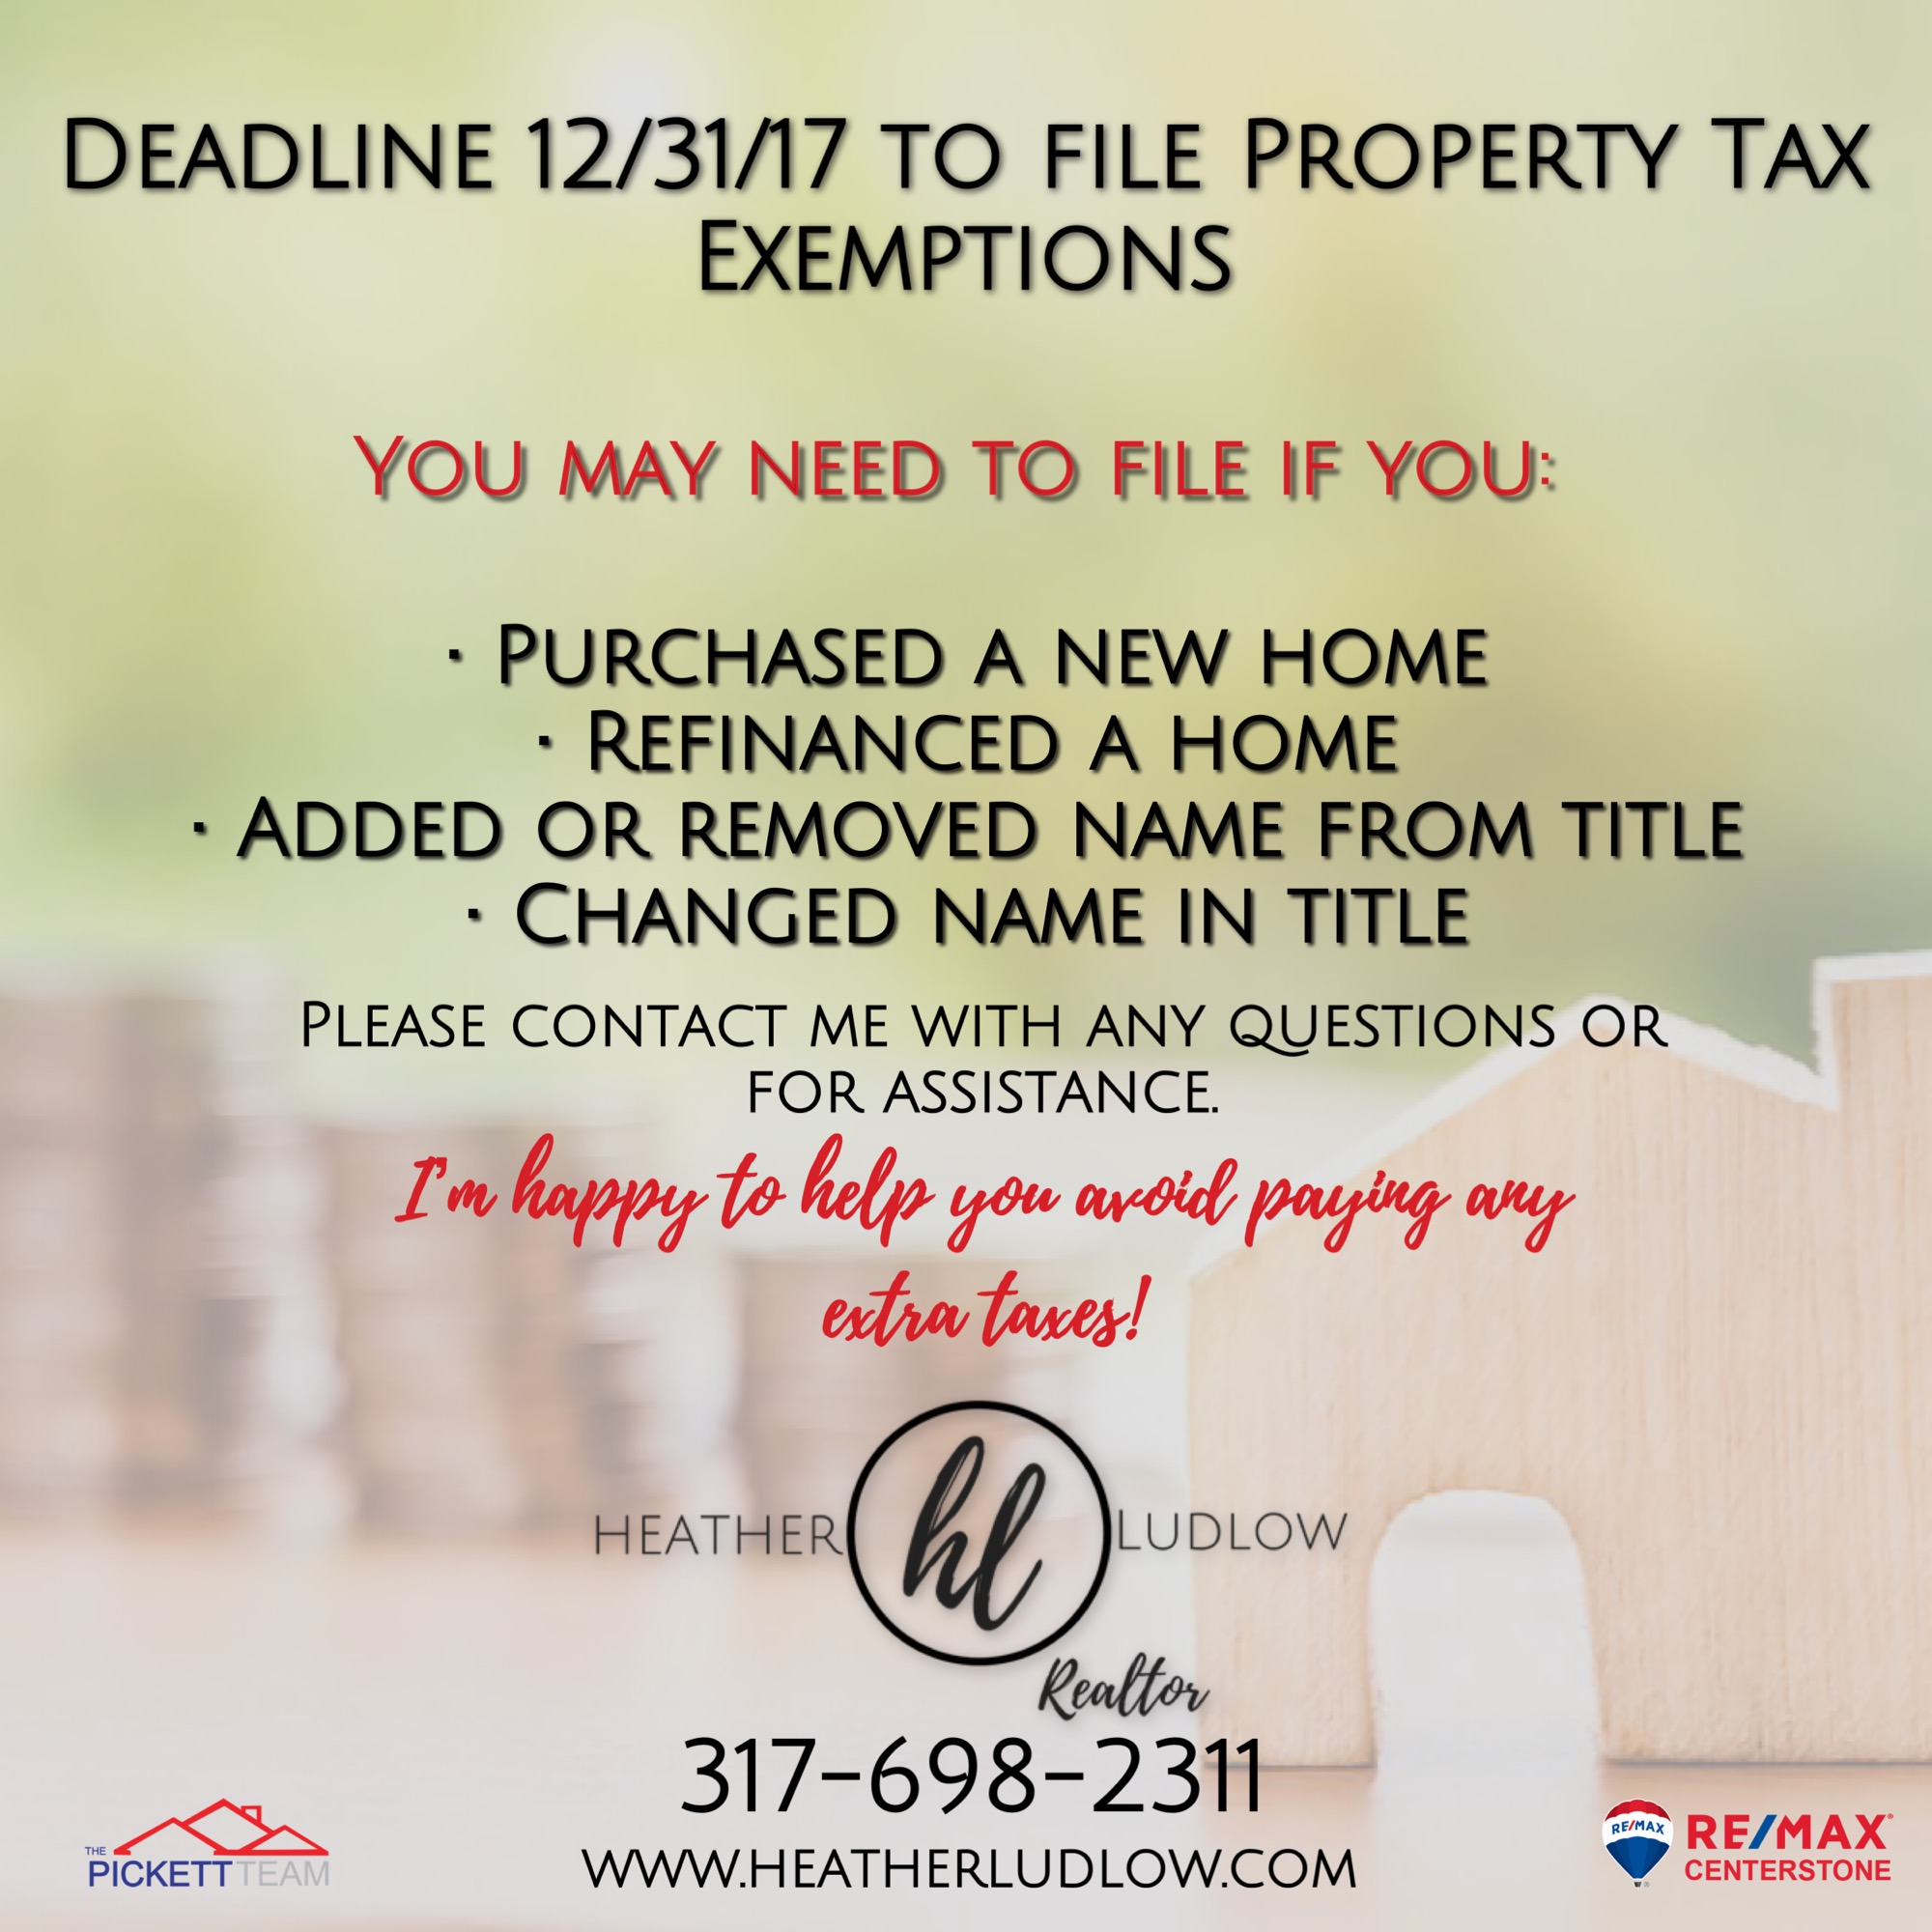 Don't forget to file your property tax exemptions!